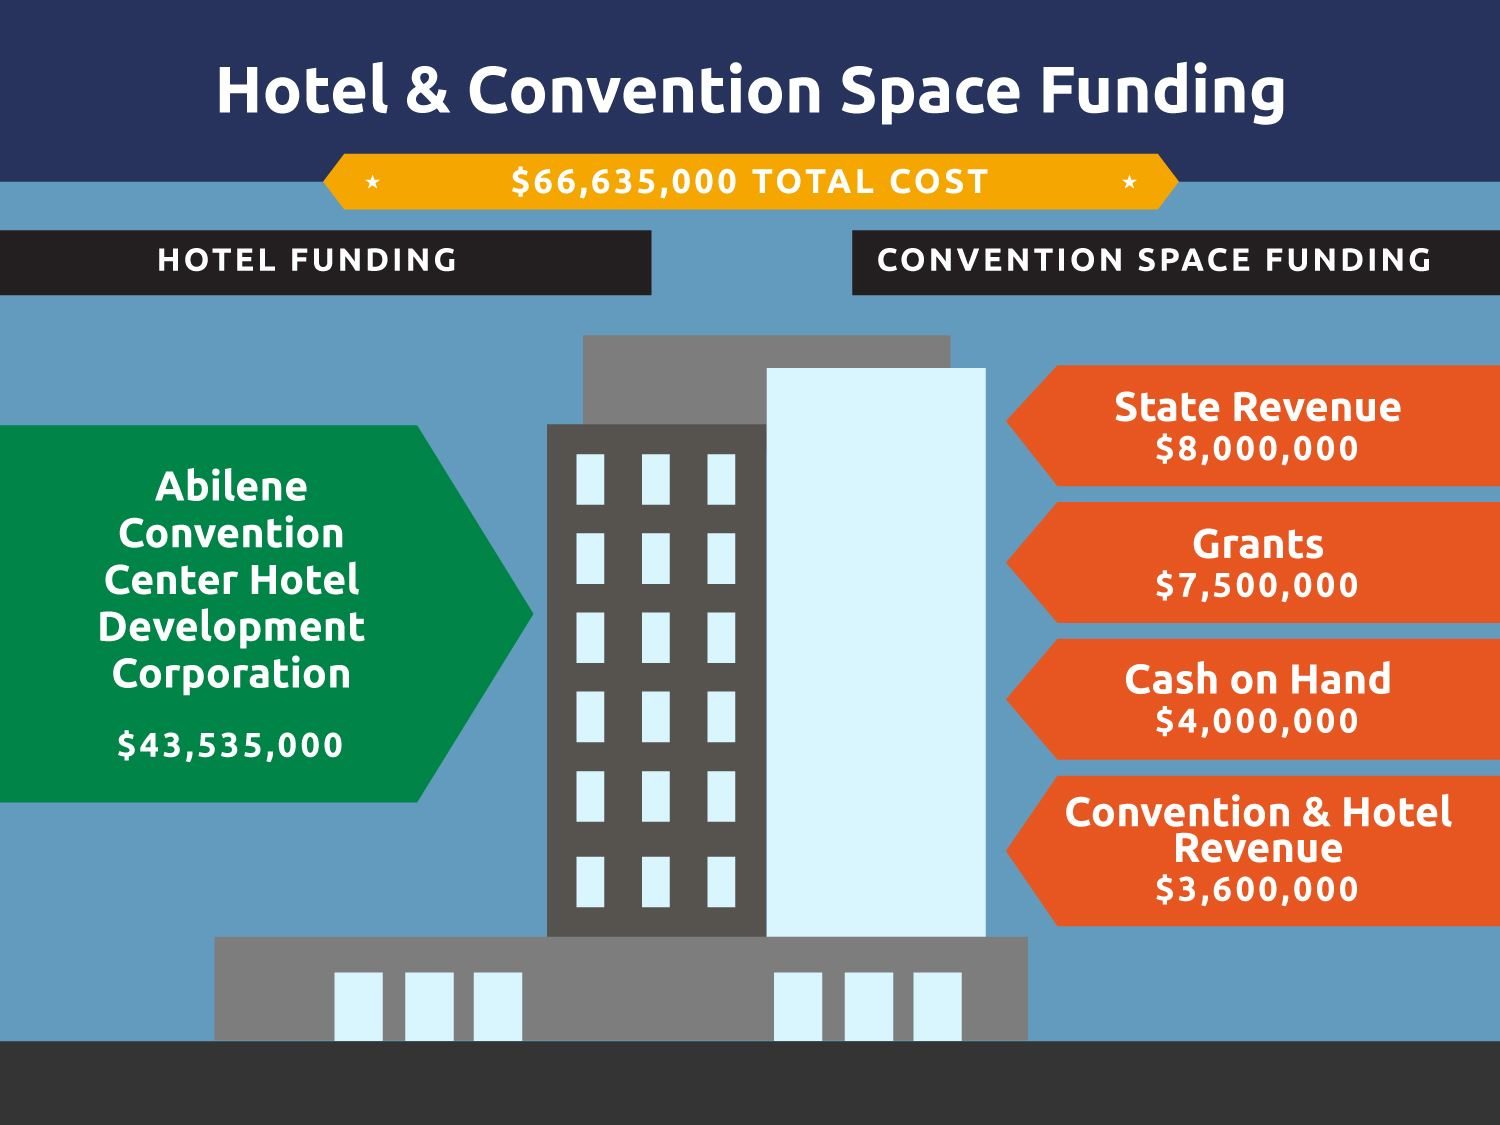 Hotel & Convention Space Funding Sources